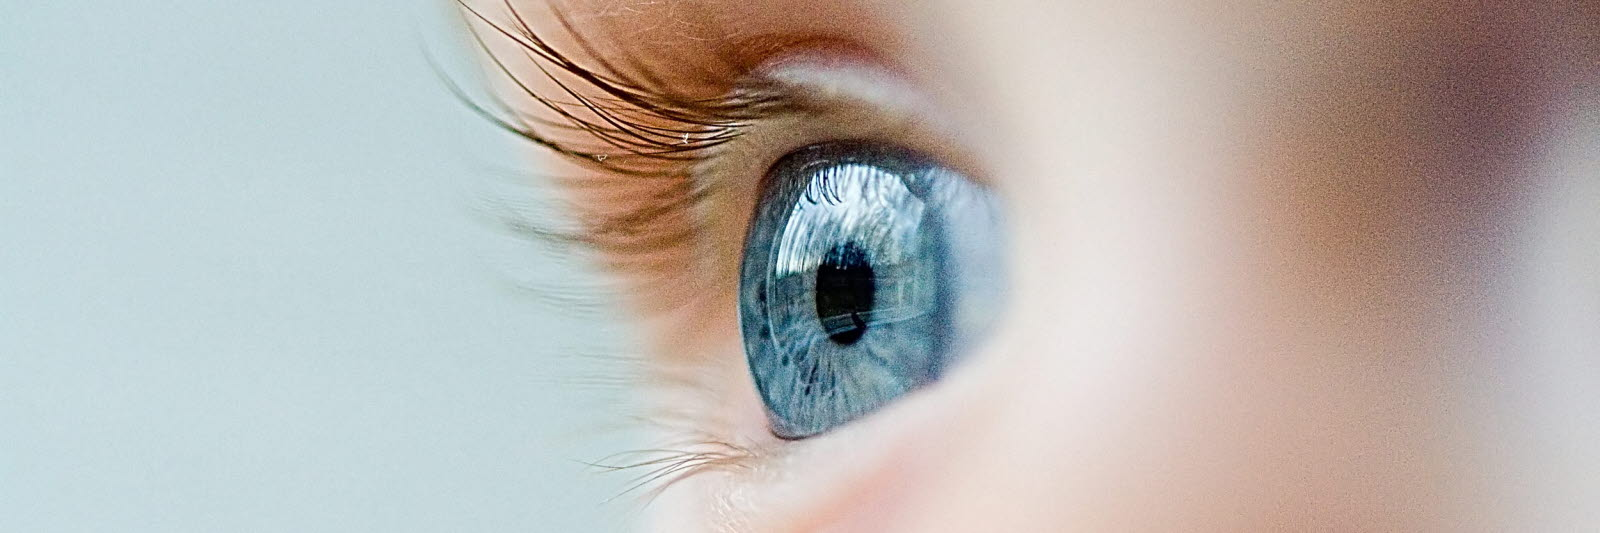 Focus on a baby blue eye